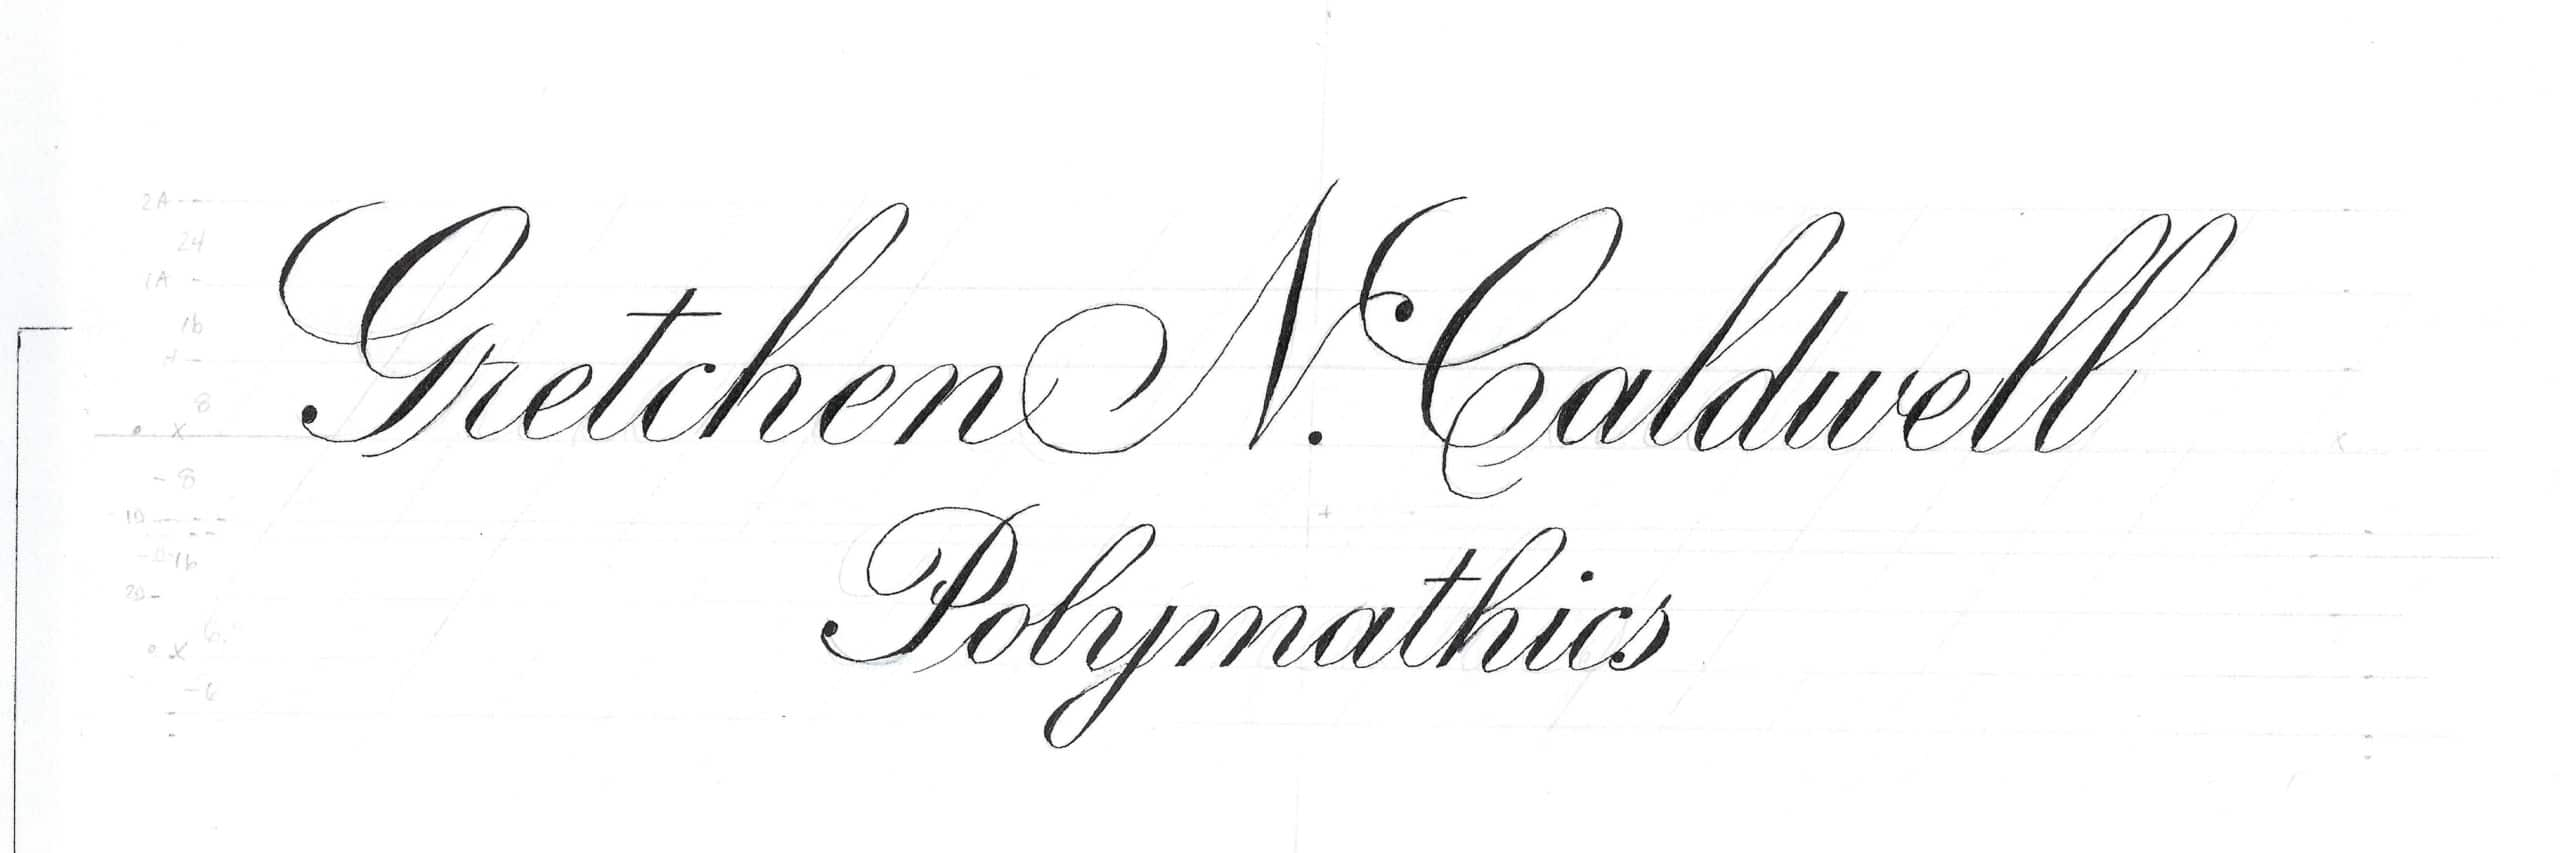 Gretchen N. Caldwell - Polymathics - Nameplate Design